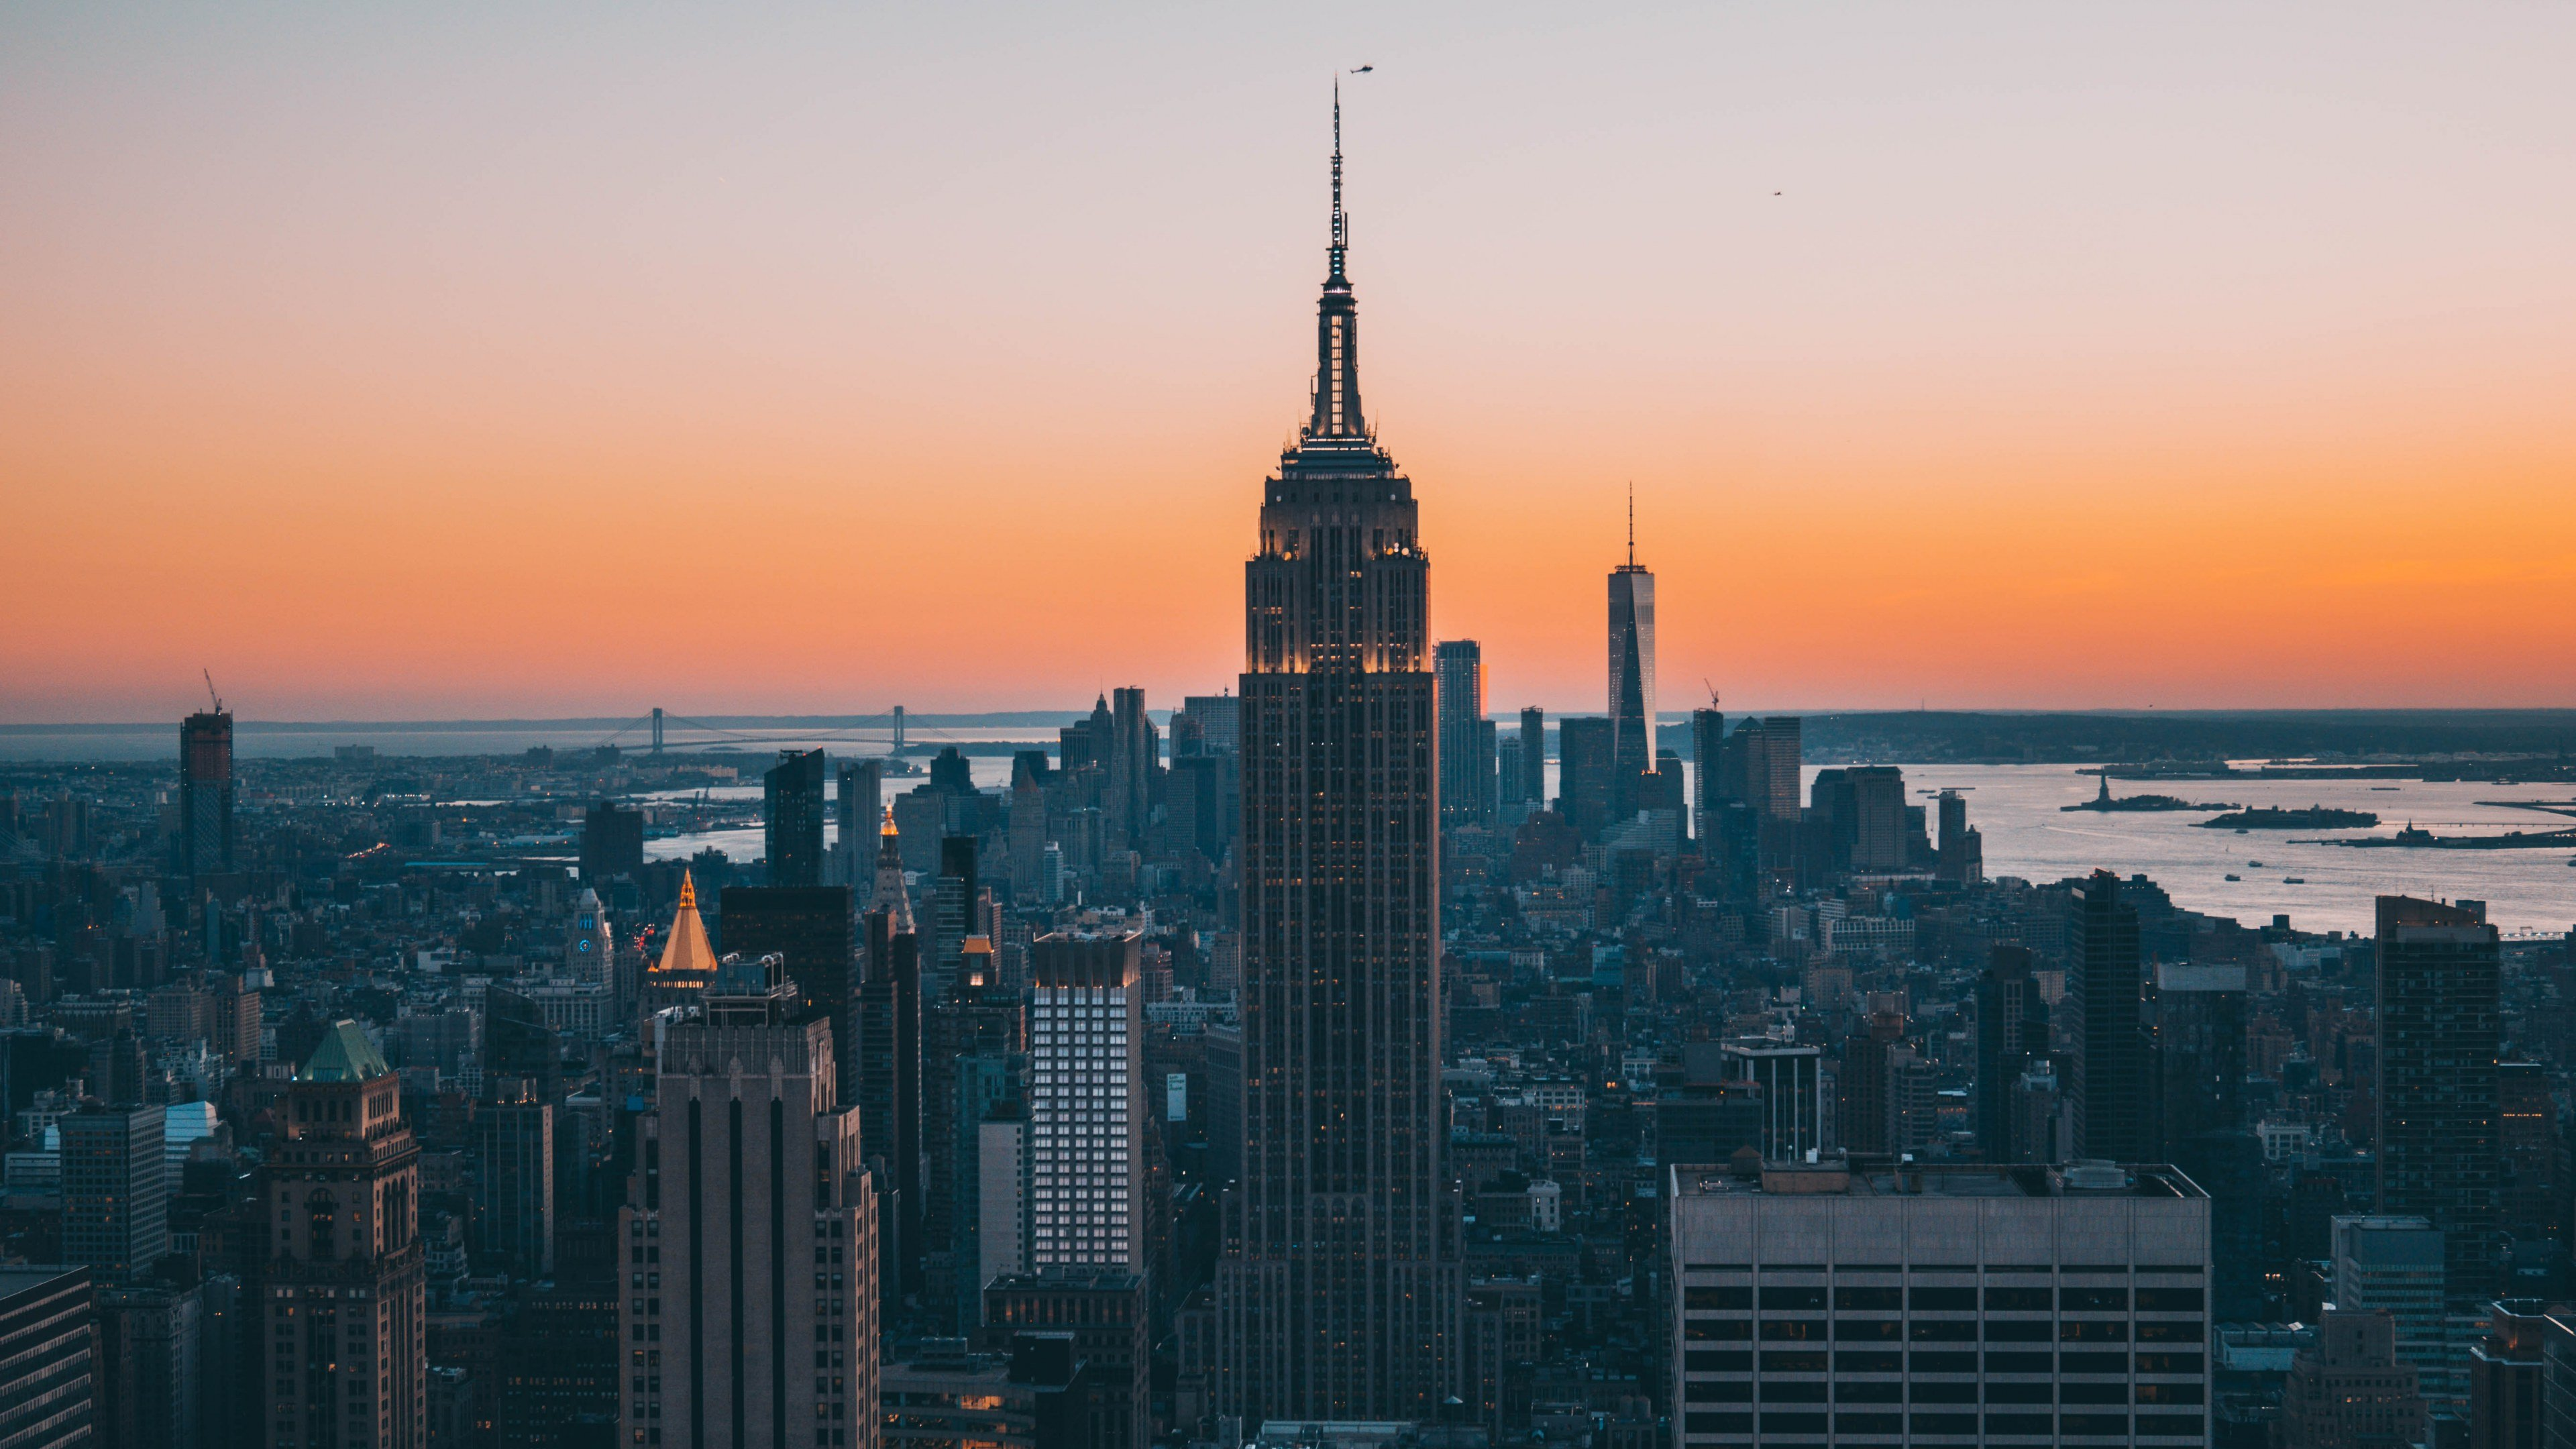 Empire State Building New York City 4k Wallpaper